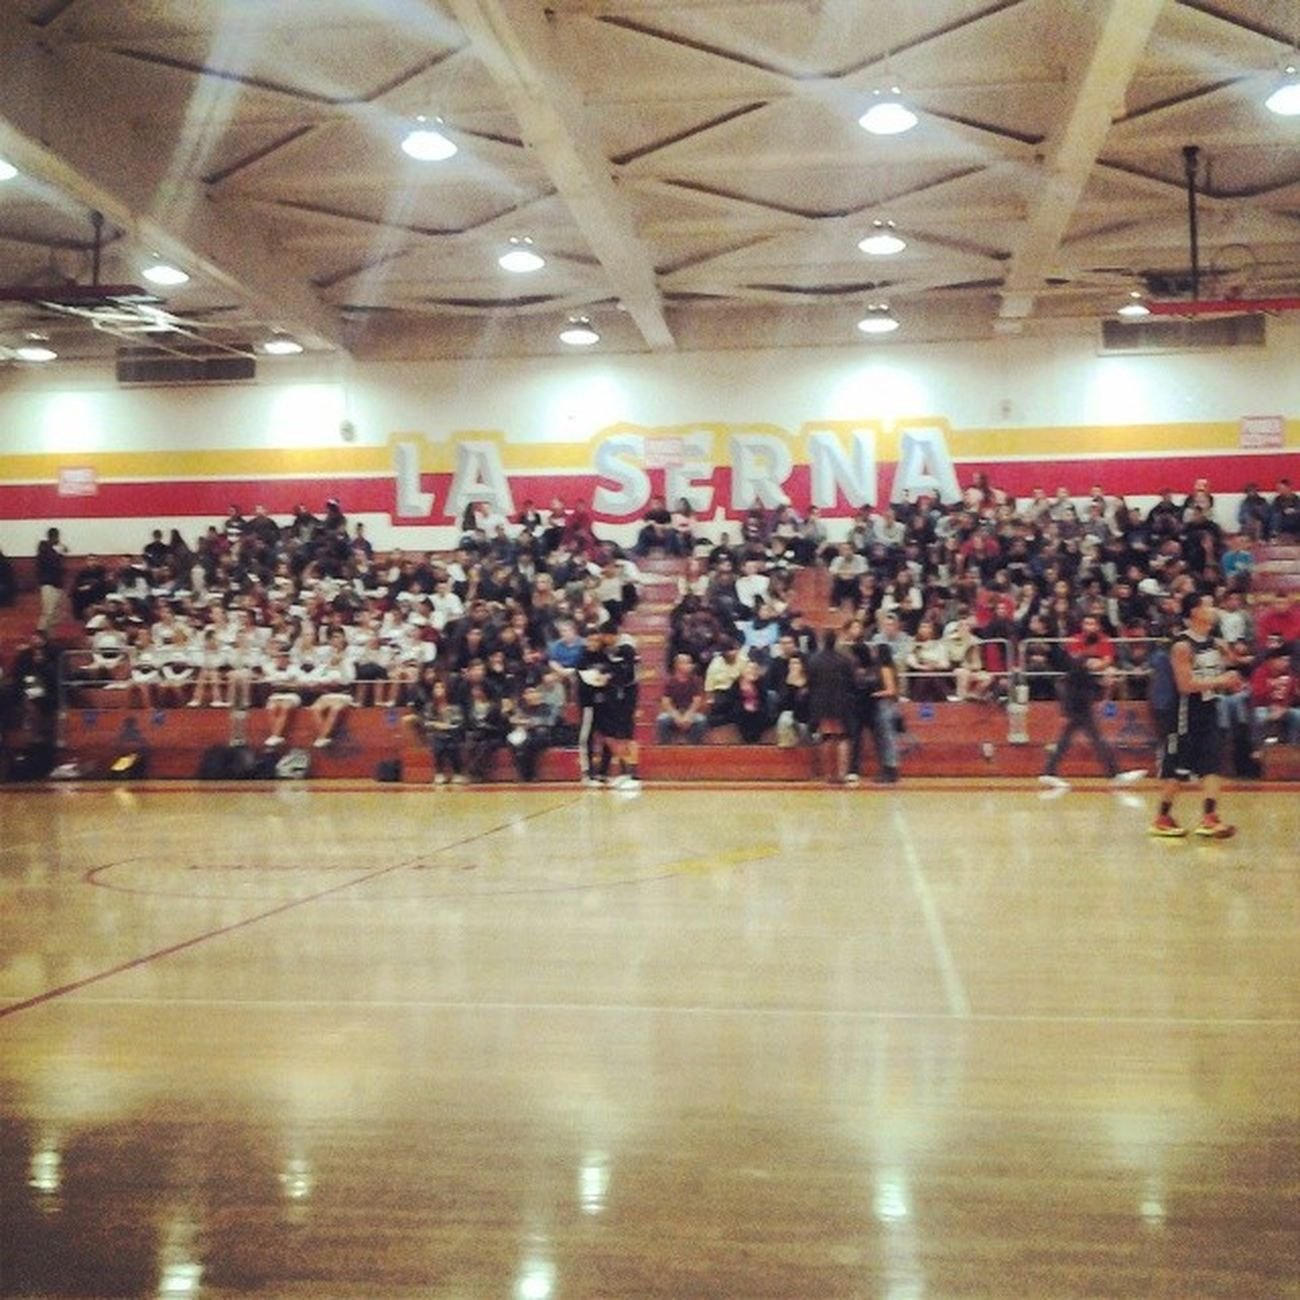 Blew it up! Power106 TheLasernaHigh StudentBody Jammed  Packed WitgMyBoy @jd_sportstherapy